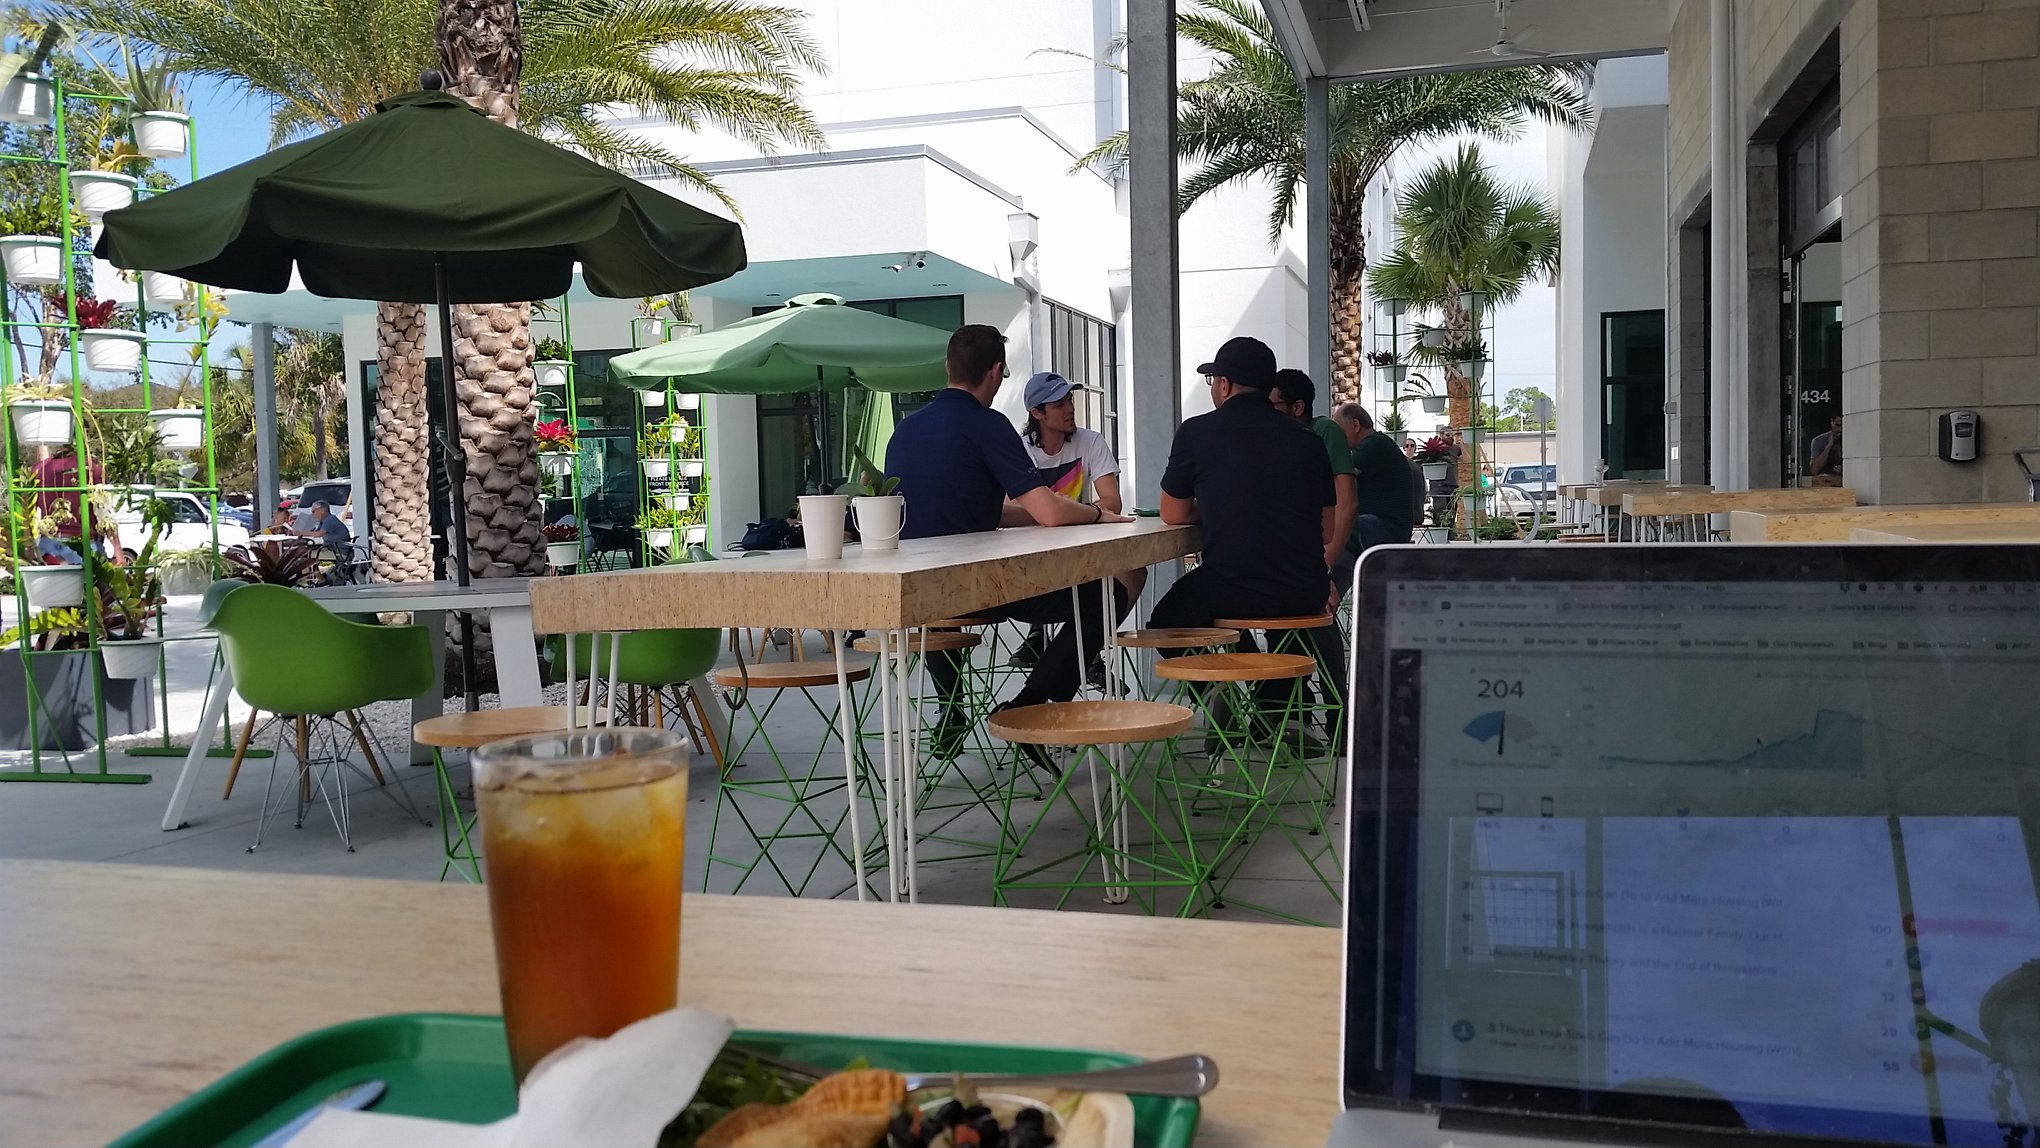 The author's occasional office of choice: a new café in this neighborhood.